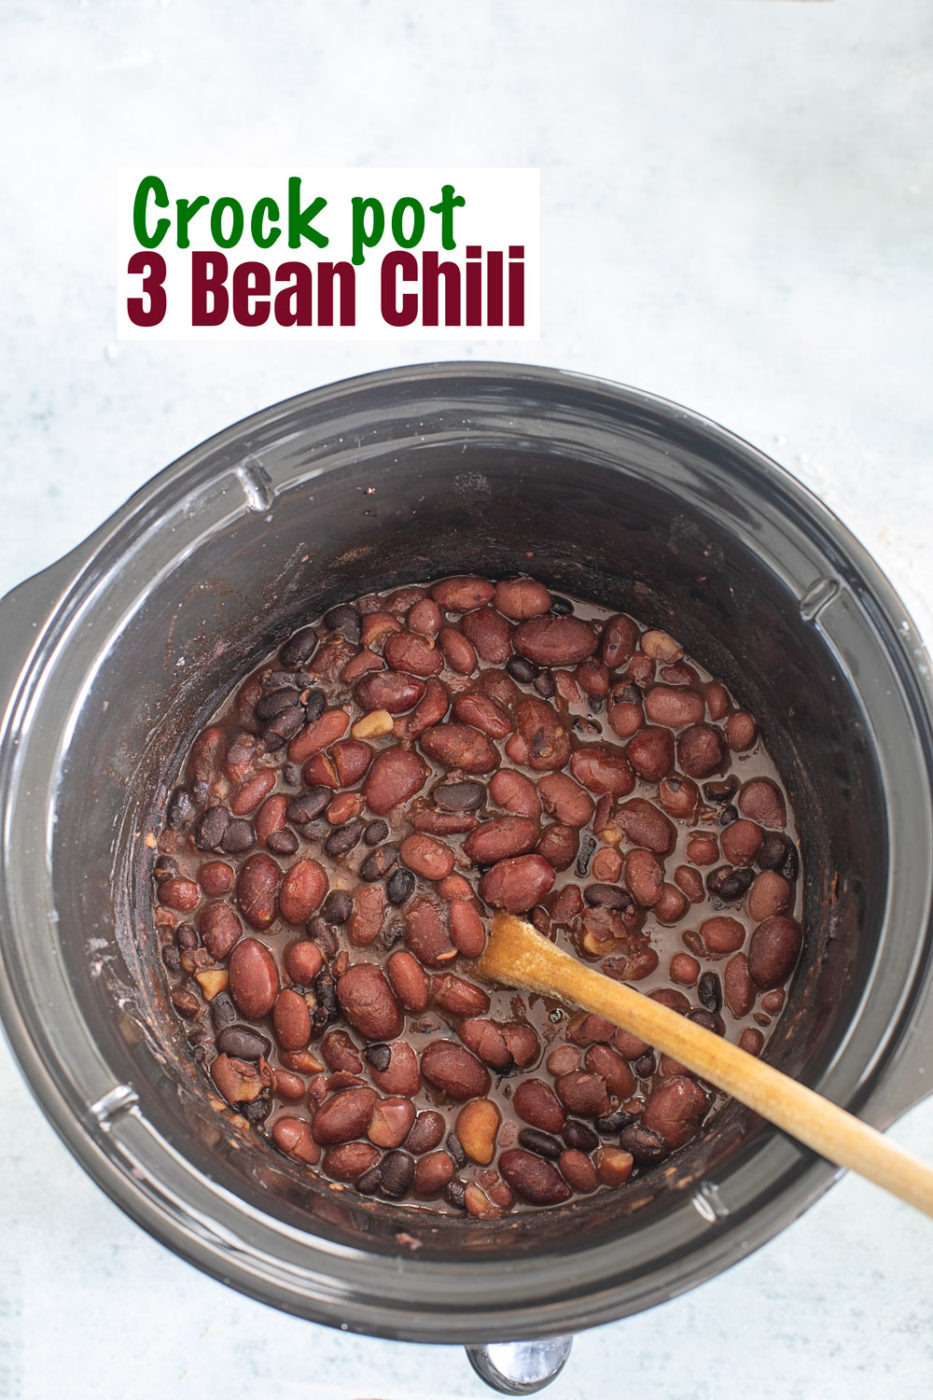 top view of chili inside the ceramic bowl of a crock pot